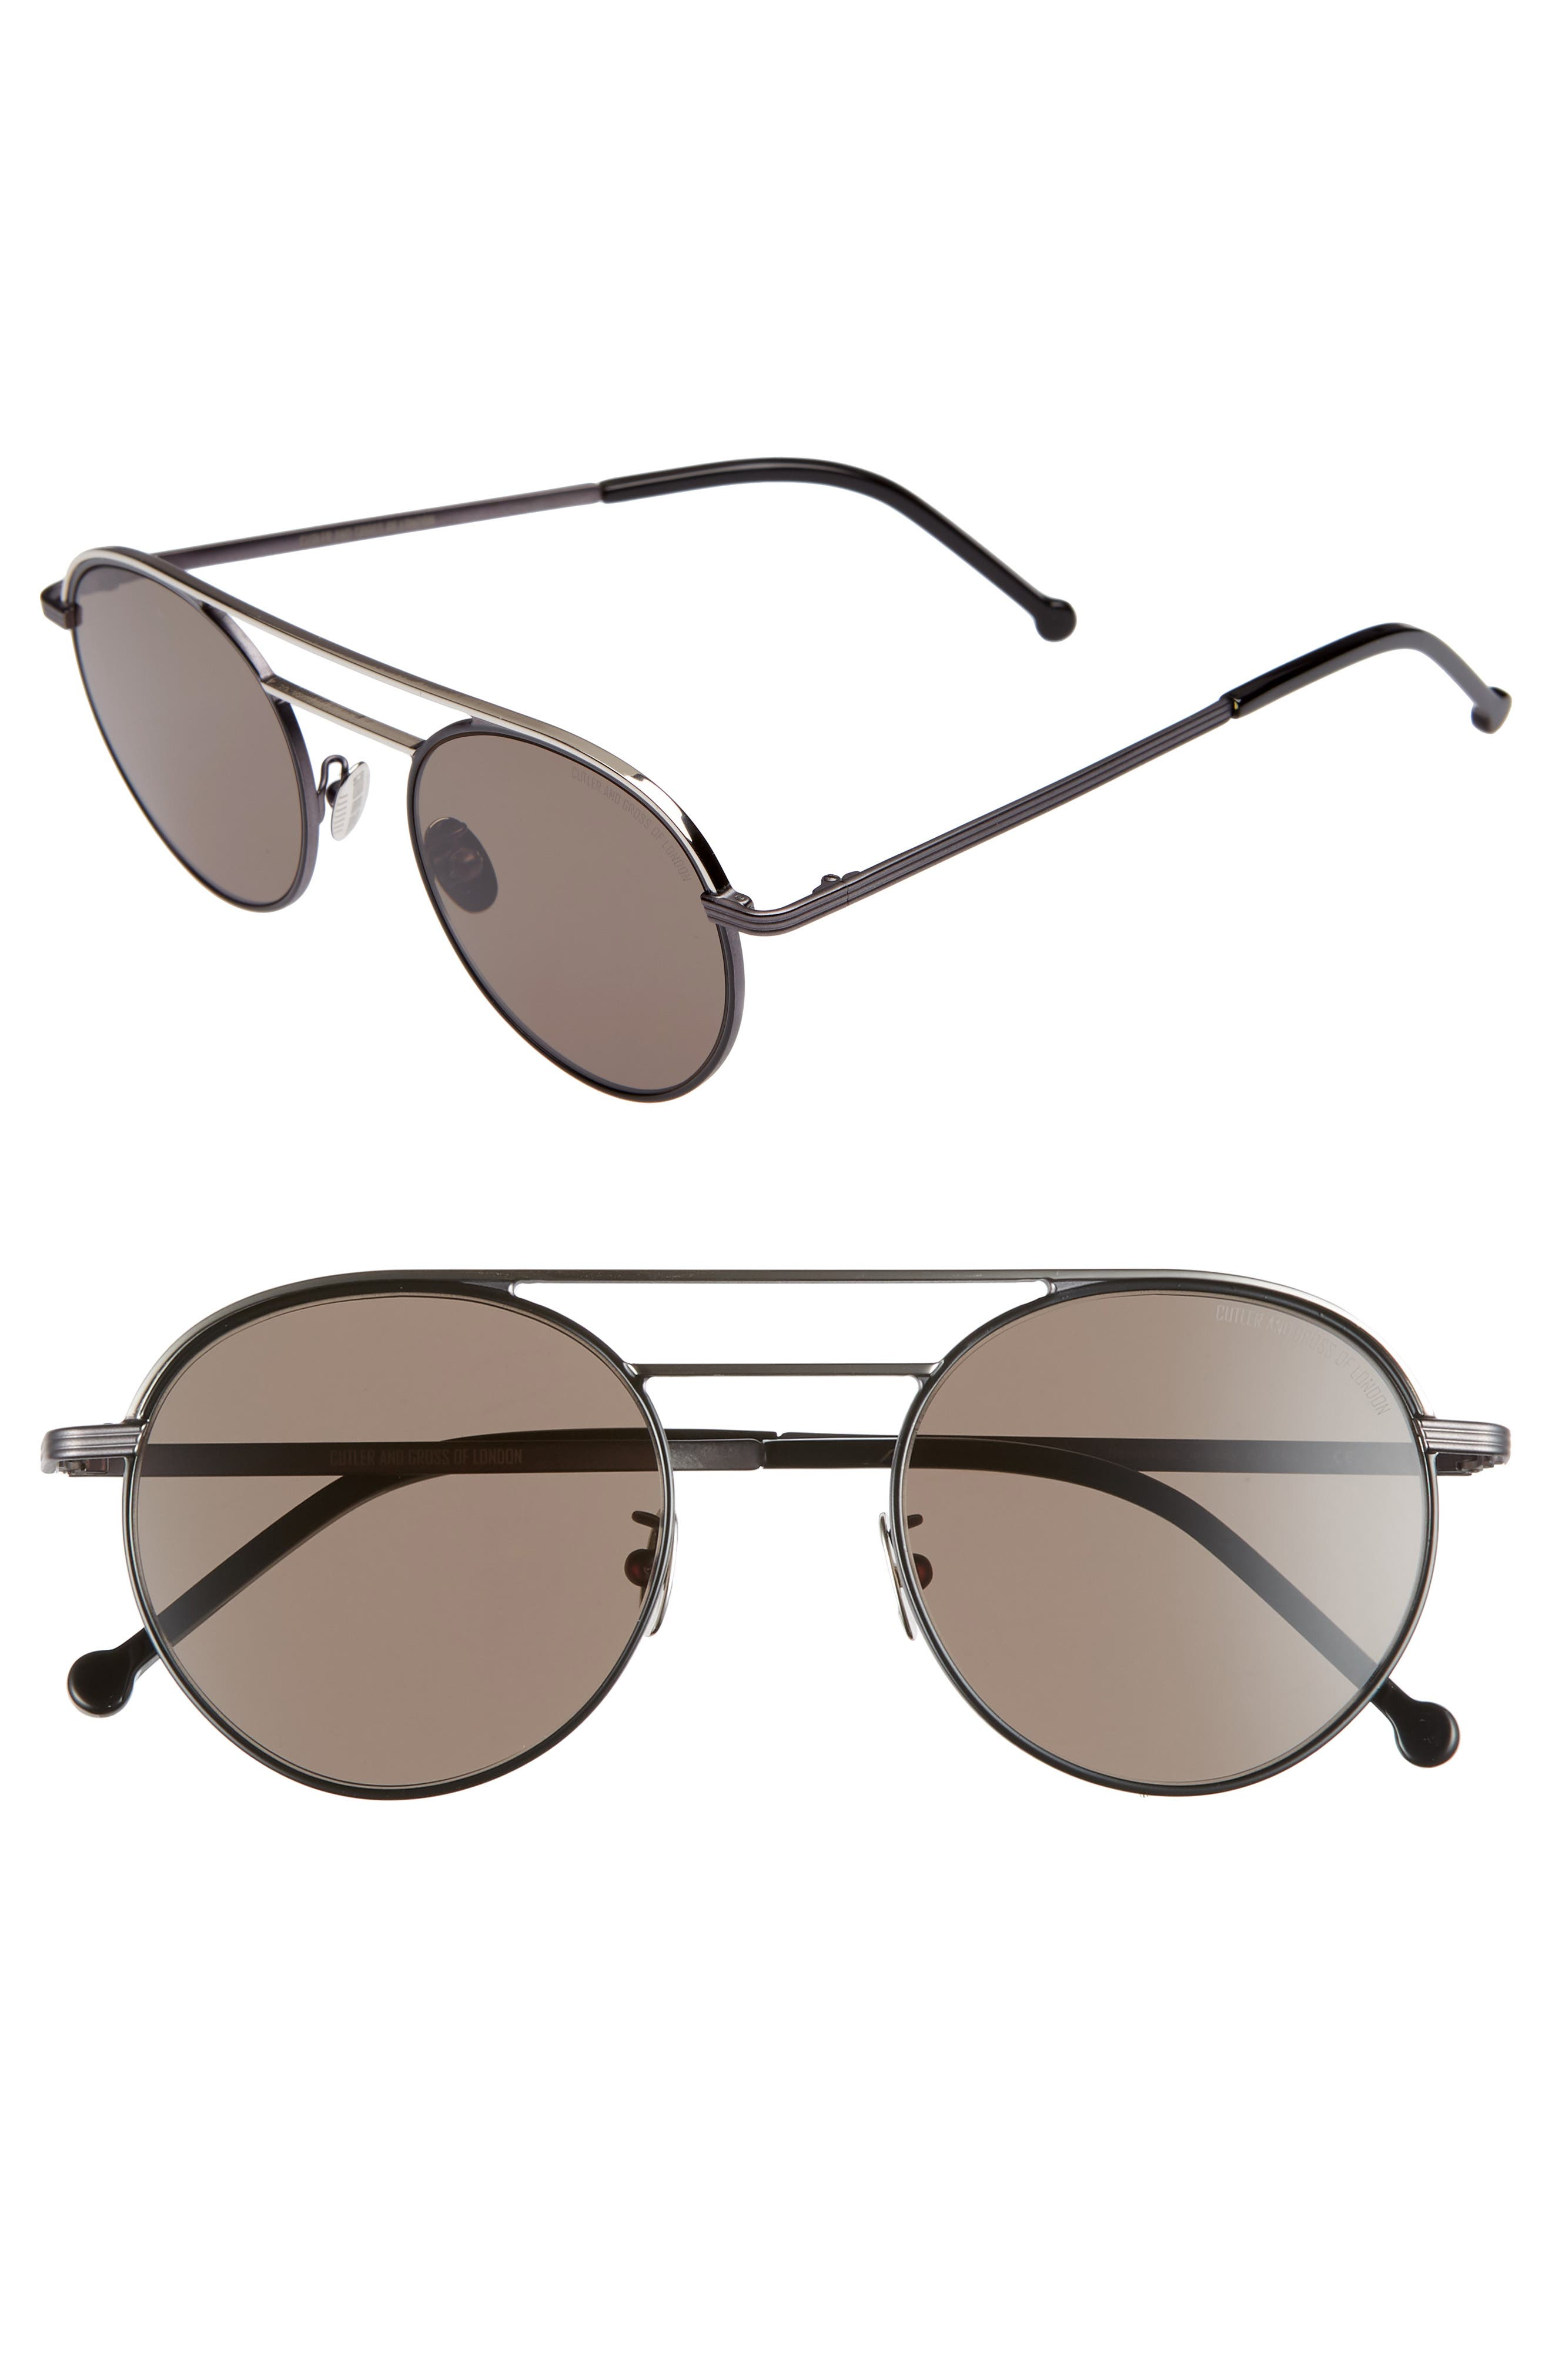 CUTLER AND GROSS 50MM POLARIZED ROUND SUNGLASSES - BLACK/ BLACK